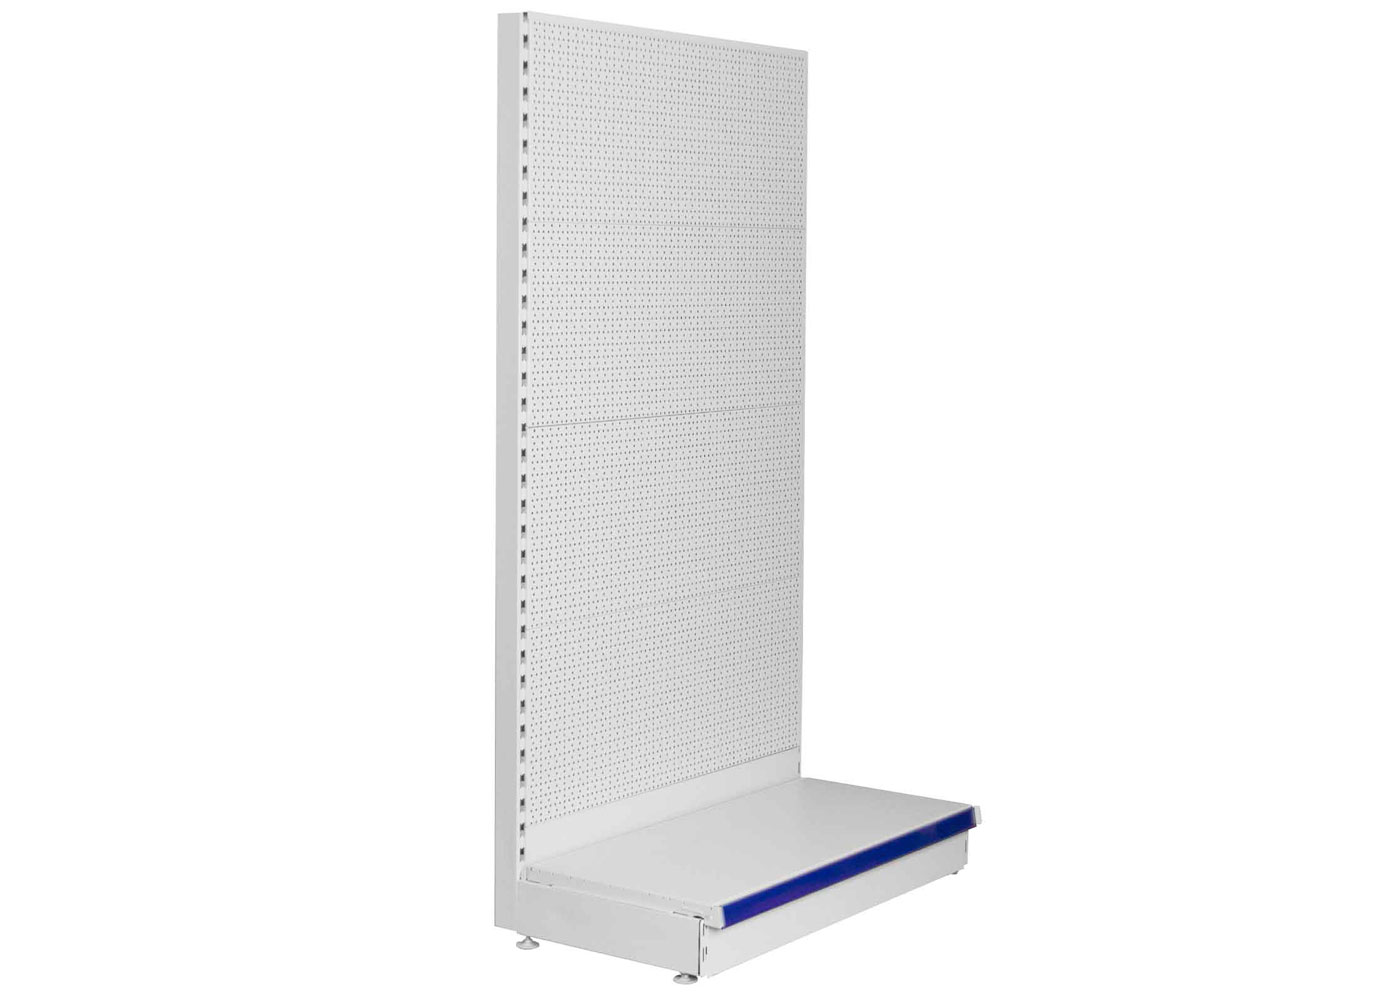 Pegboard Shelving Unit